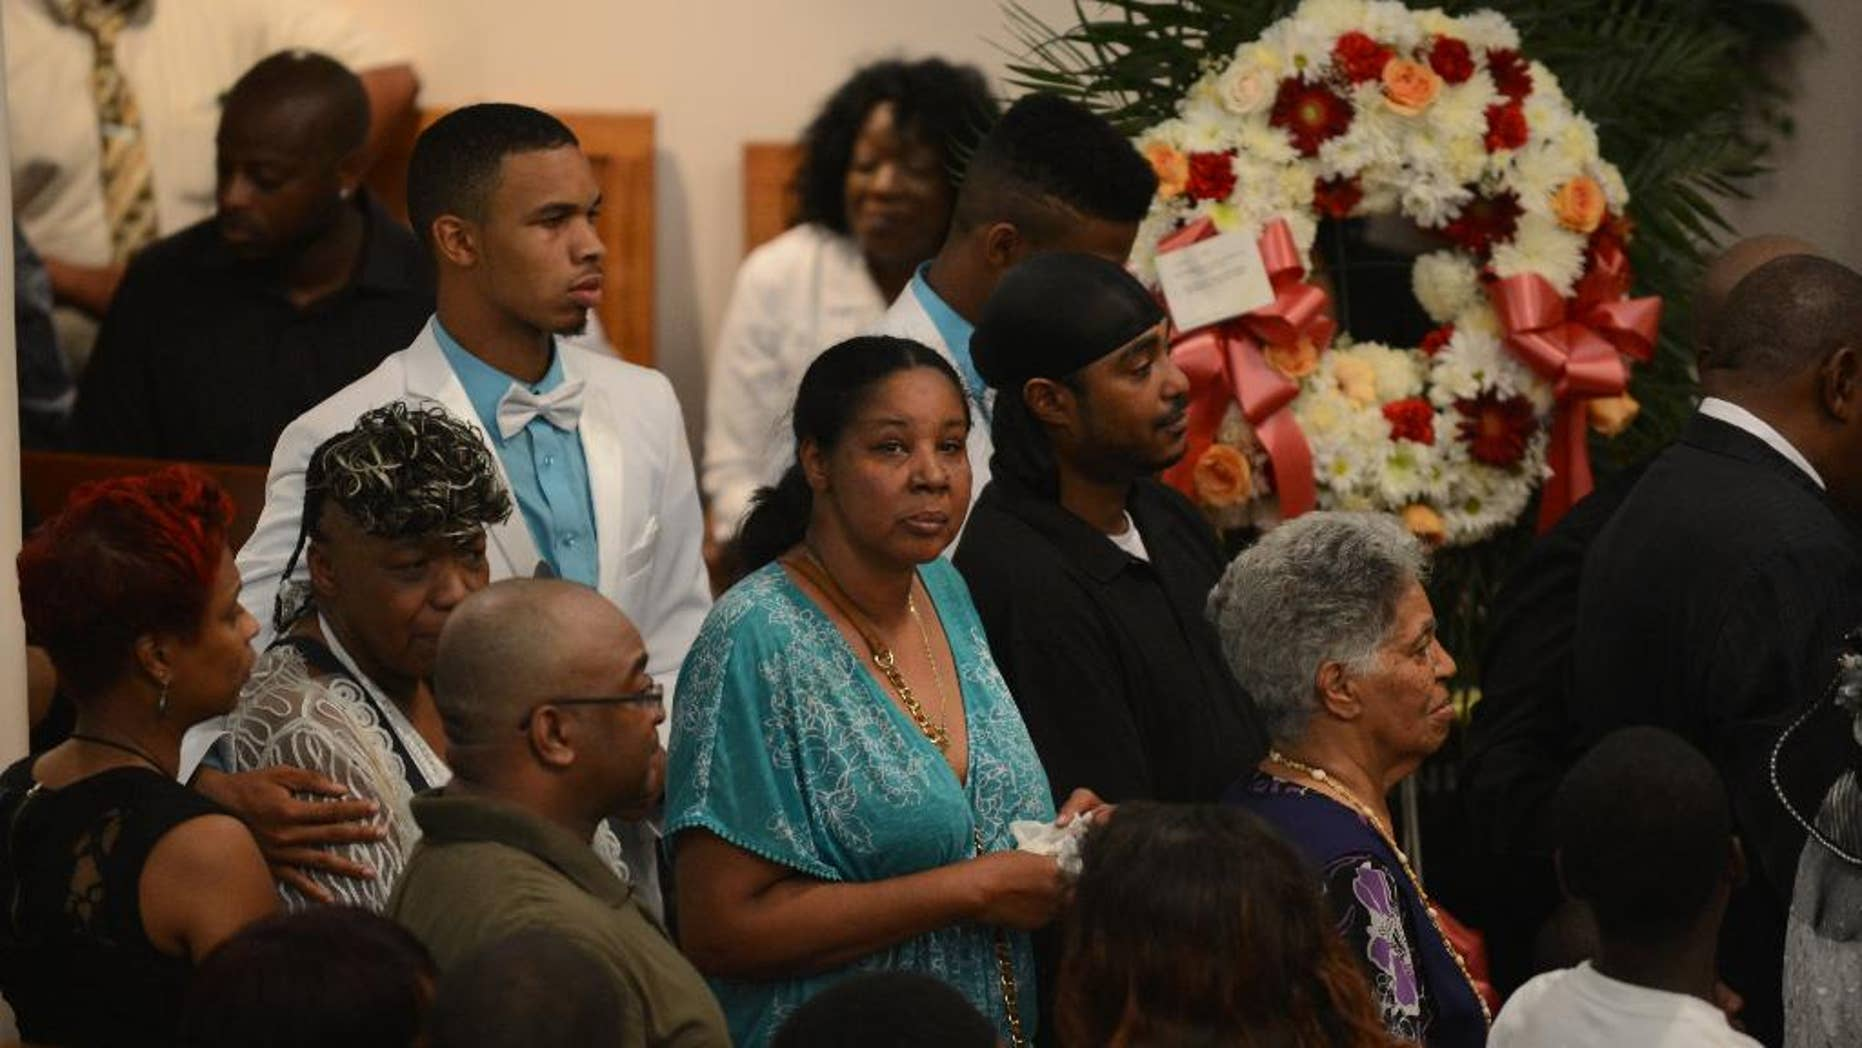 Esaw Garner, center, is followed by Gwendolyn Flagg-Carr, mother of Eric Garner, and Eric Snipes Garner, Jr., son of Eric Garner,  during funeral services for her Eric Garner, at Bethel Baptist Church in  the Brooklyn borough of New York Wednesday, July 23, 2014.  Garner's death while in police custody has led to accusations of police misconduct.  (AP Photo/The Daily News, Julia Xanathos, Pool)